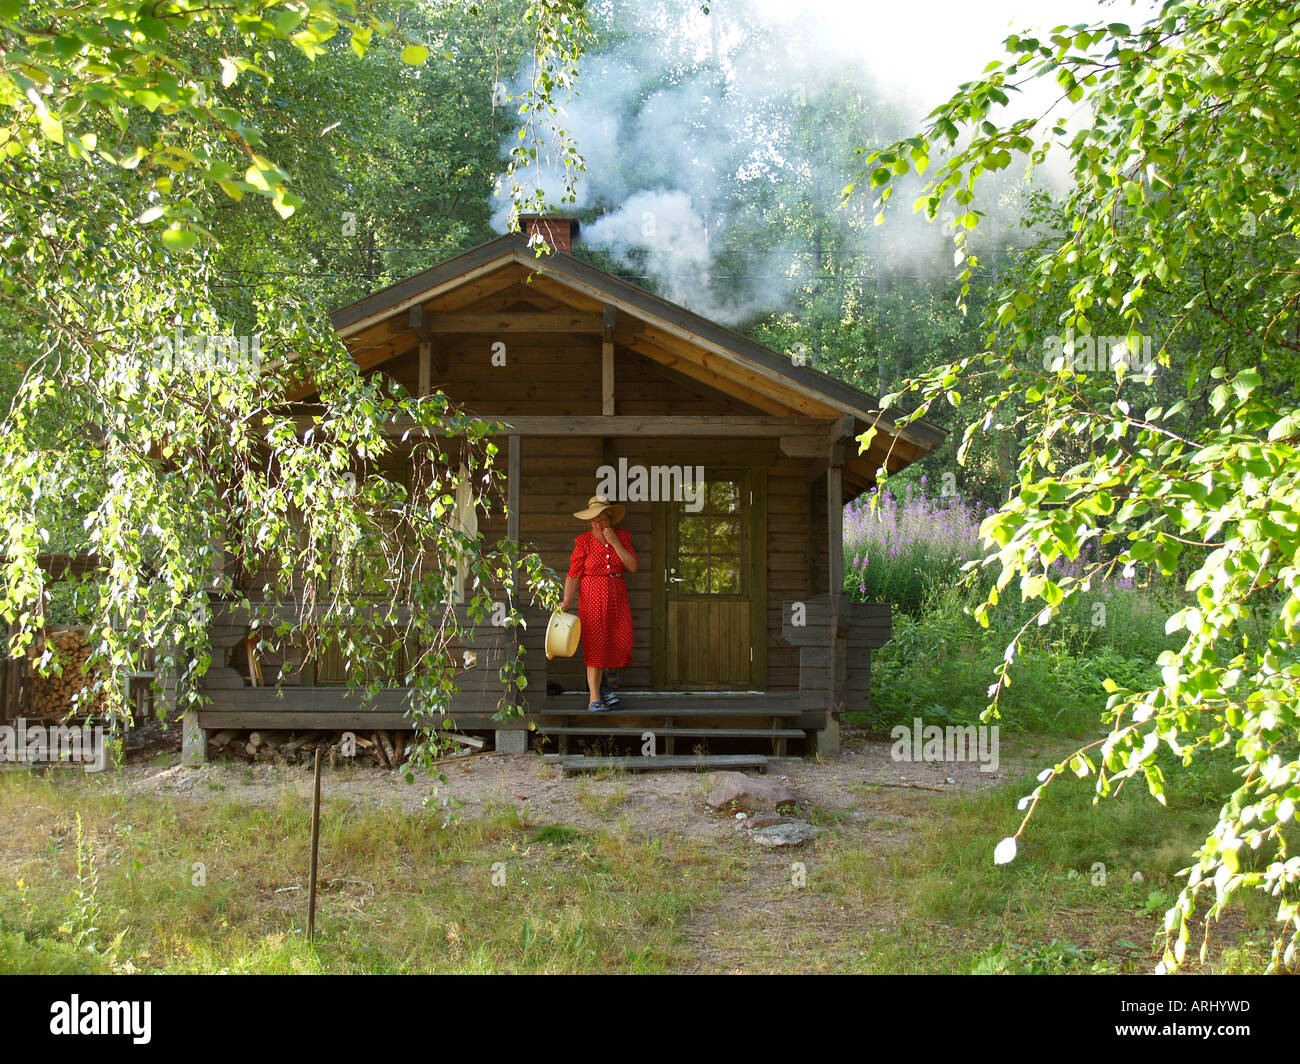 reeking sauna by heating a timber sauna in the nature in Finland - Stock Image